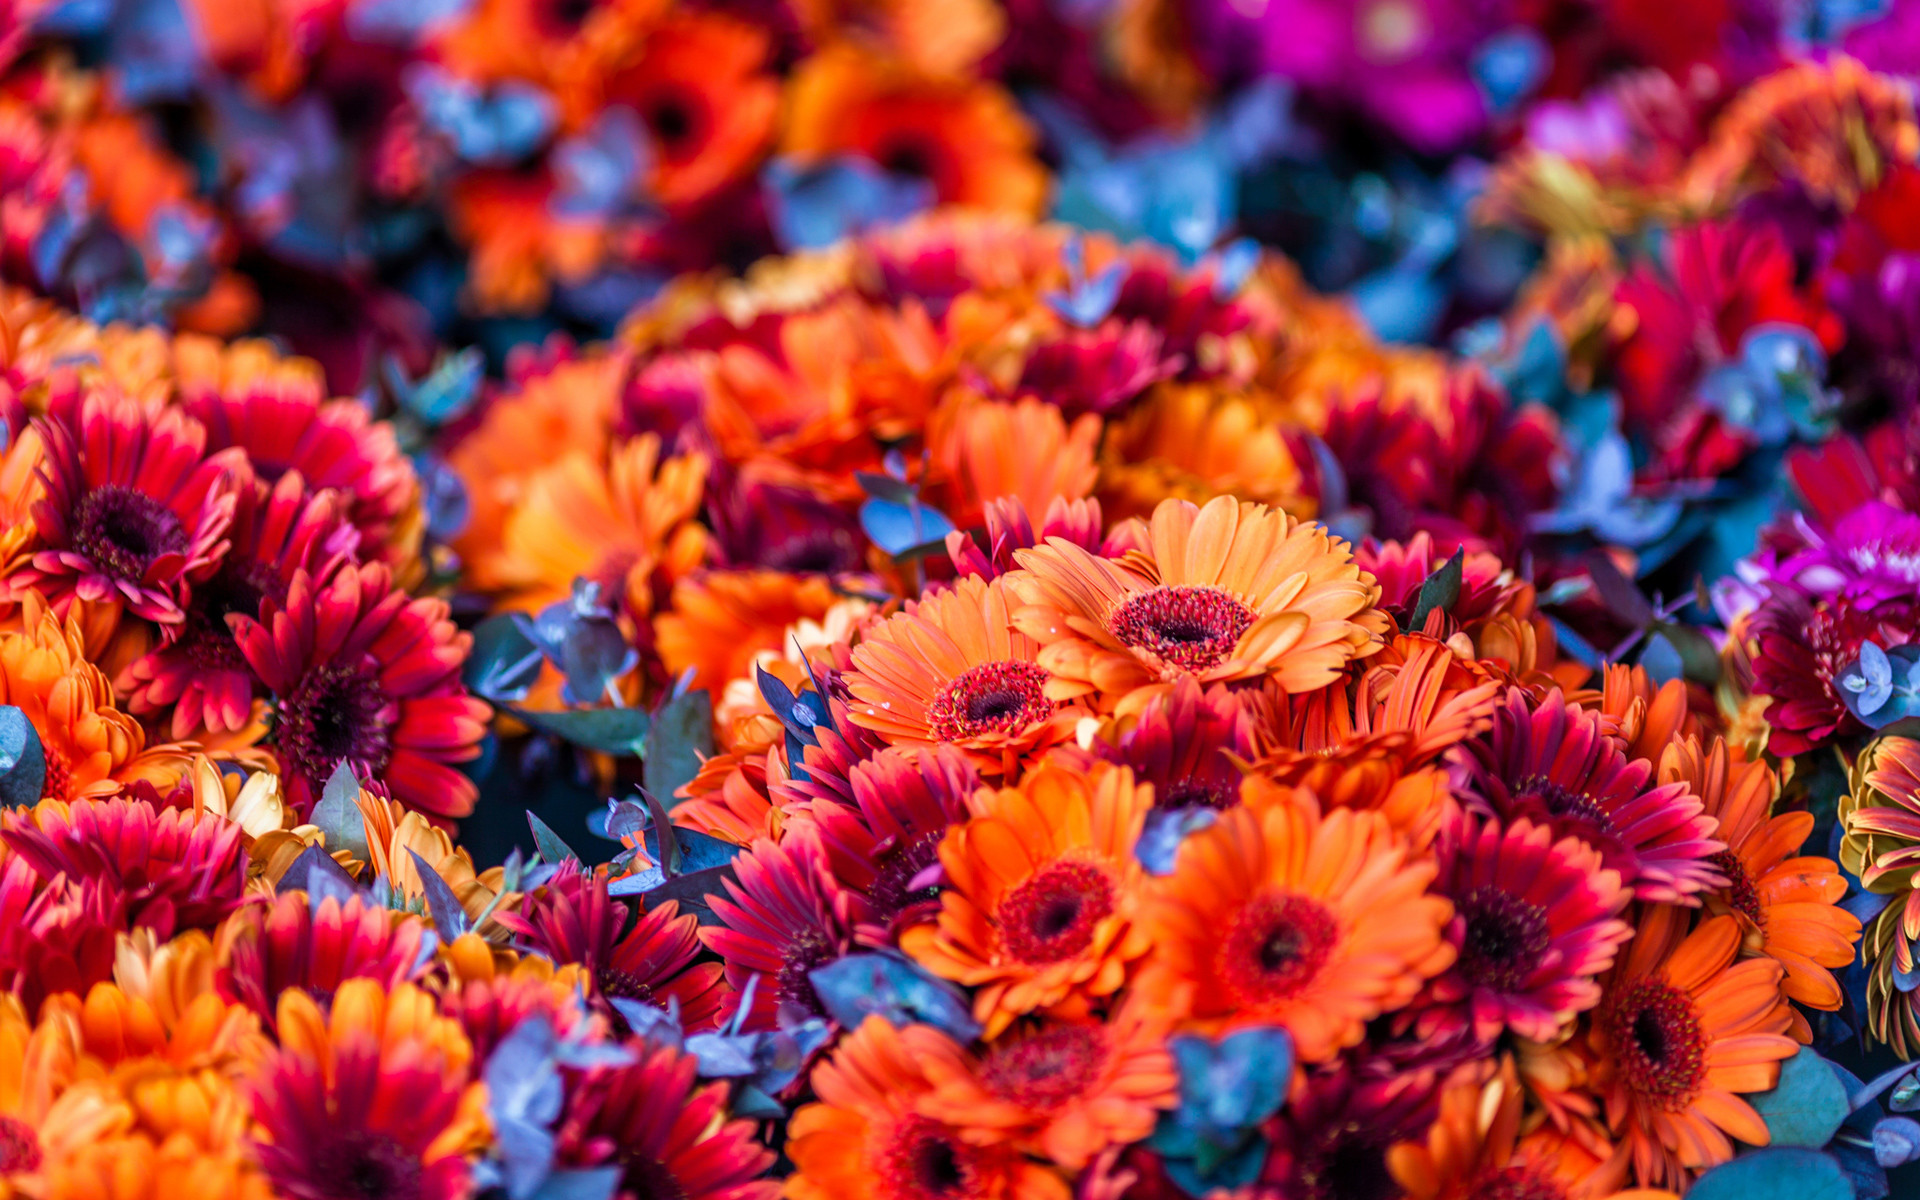 1920x1200 Colorful Flowers Blurred Background HD Wallpaper